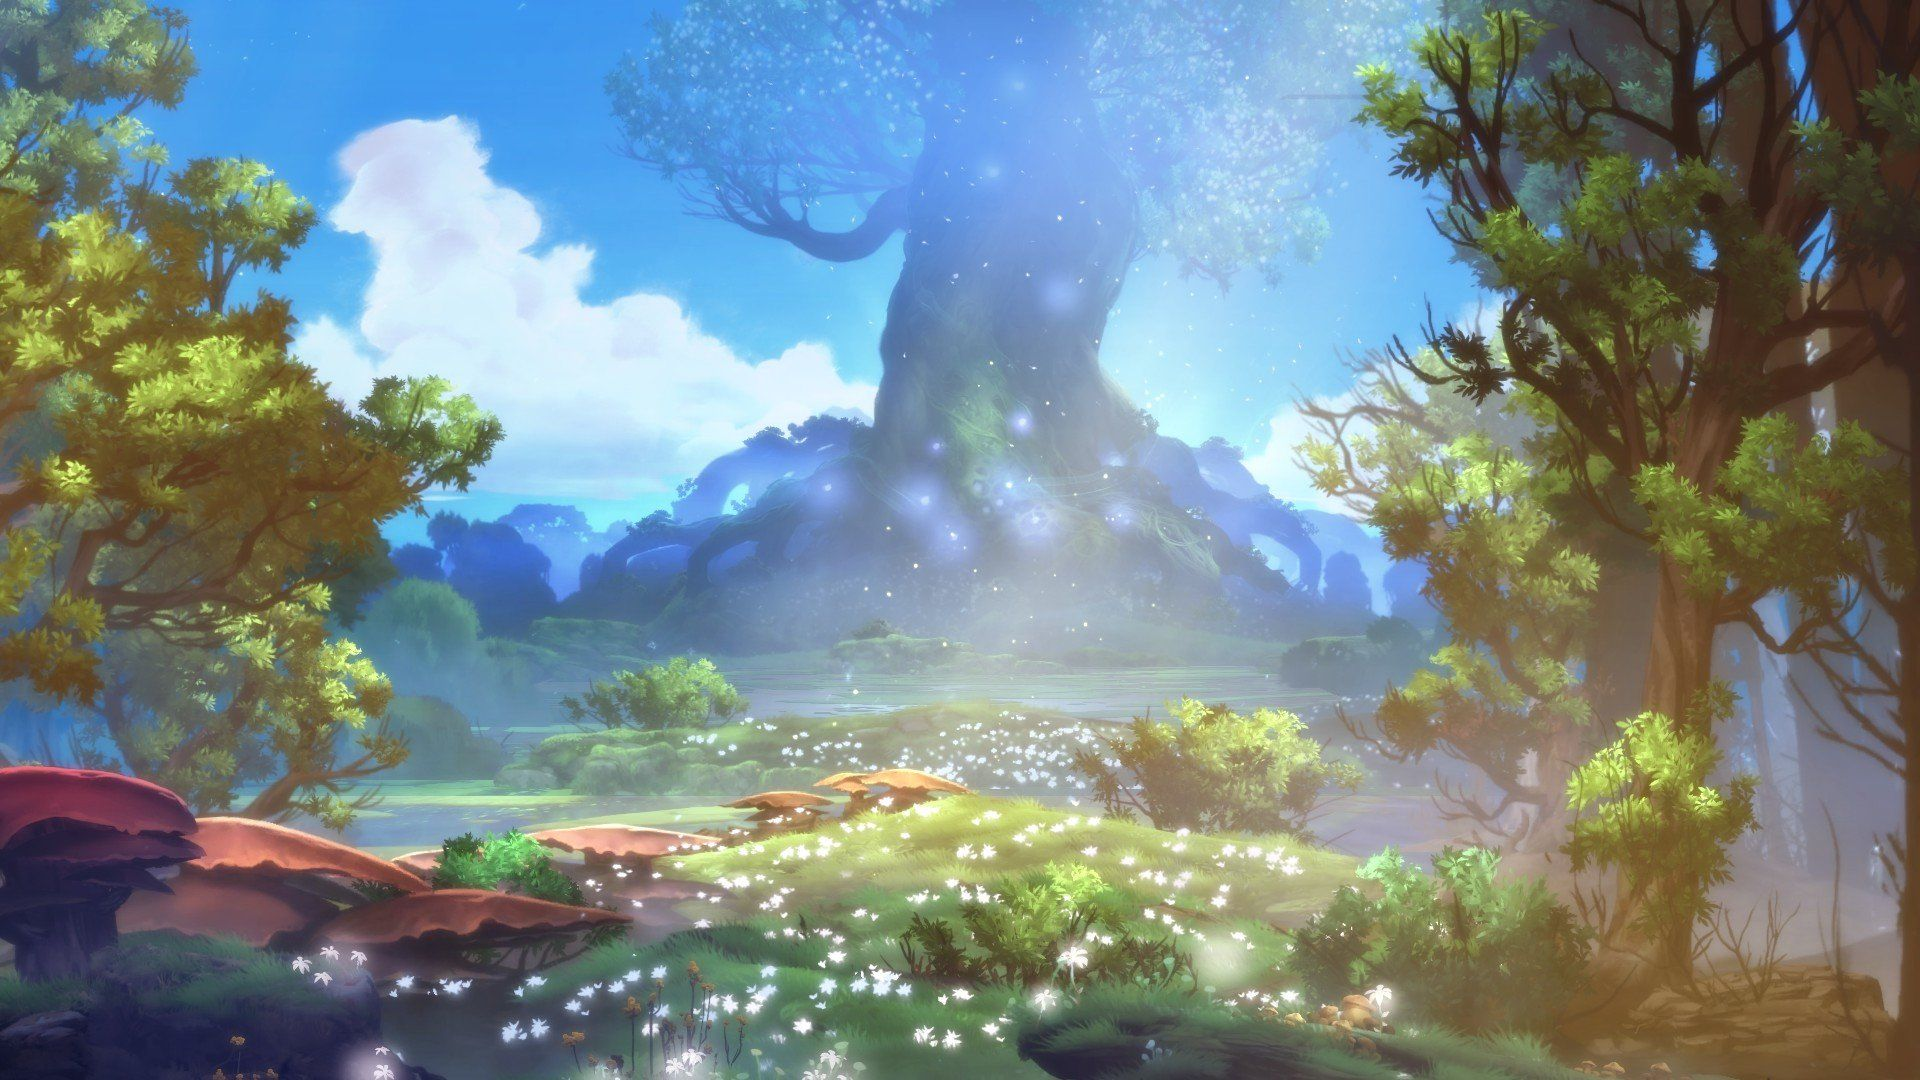 Ori And The Blind Forest Game Art Johannes Figlhuber Forest Games Environment Concept Art Art